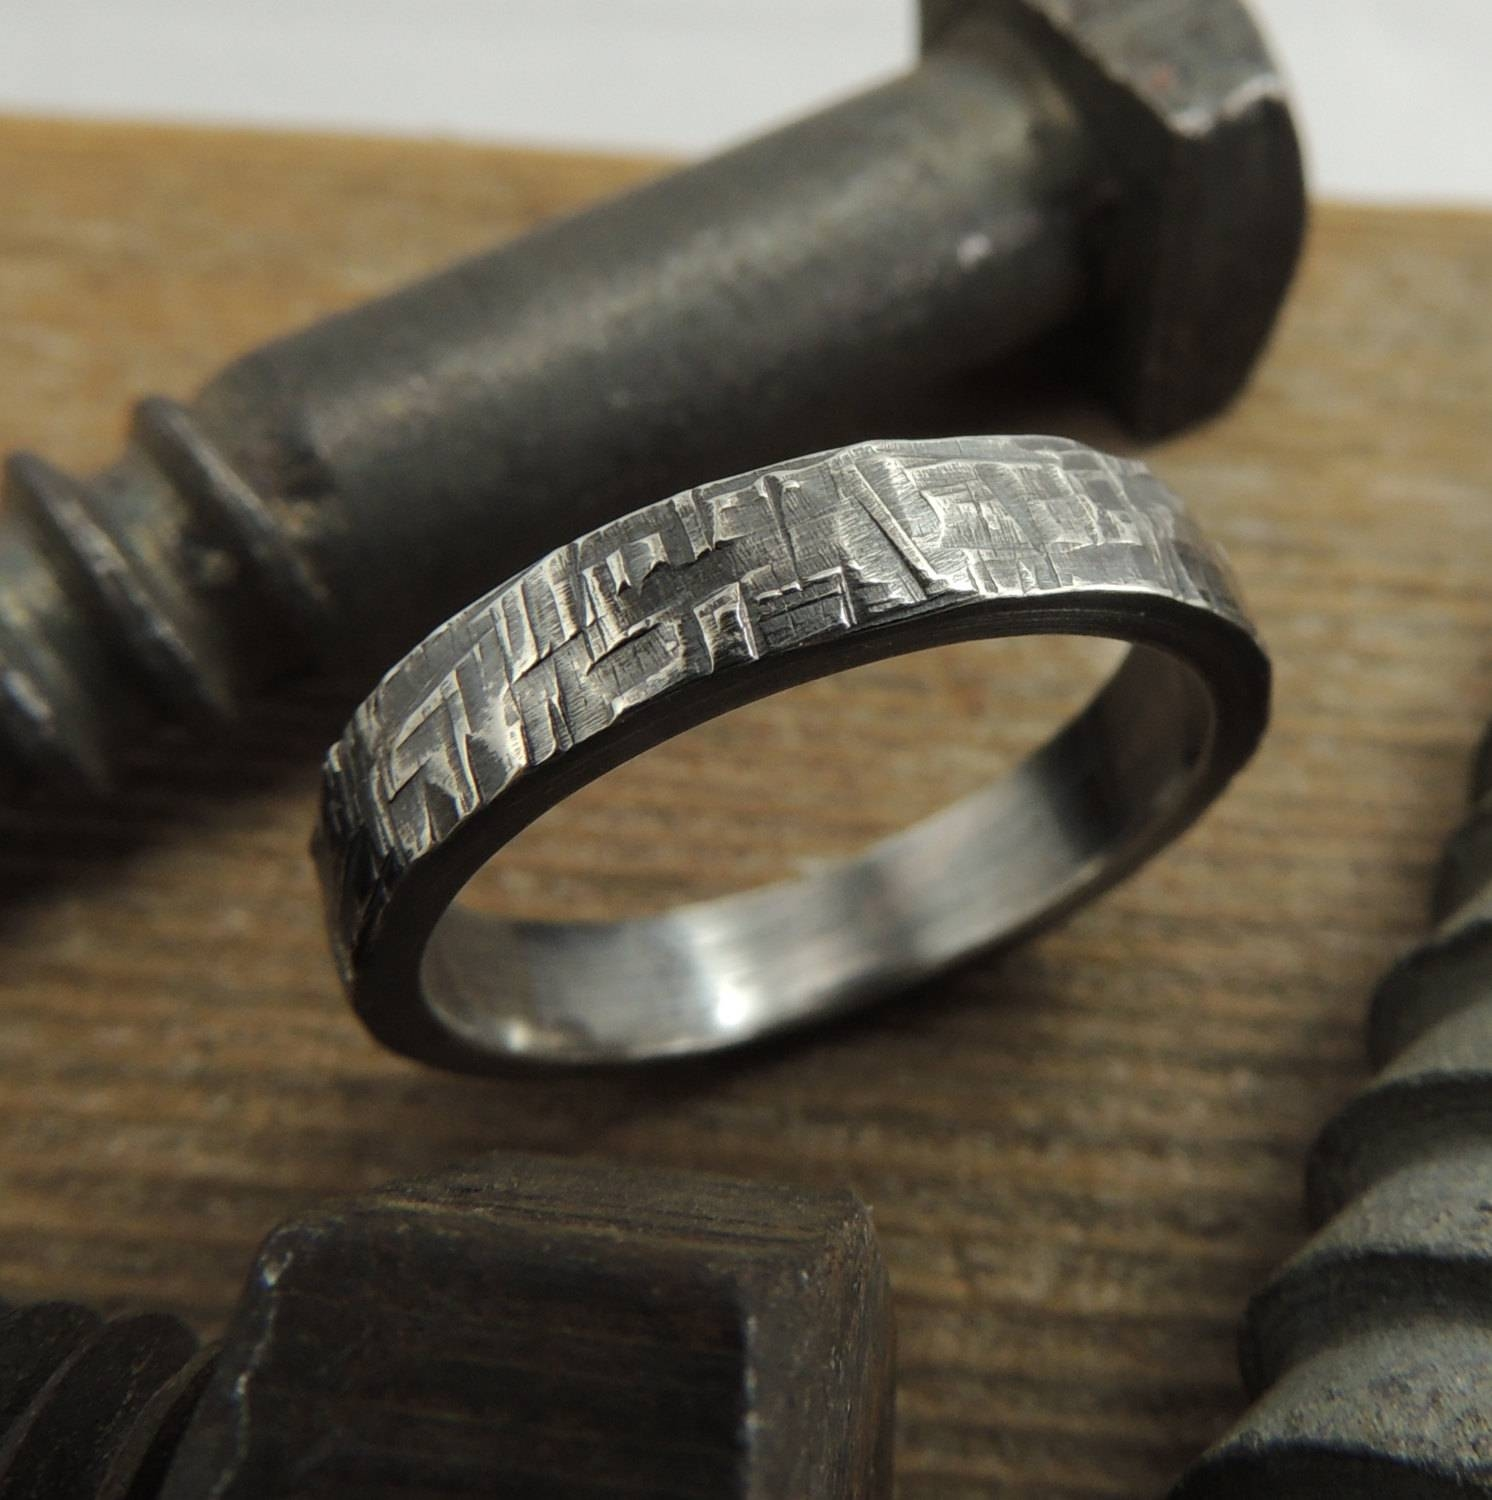 Most Popular Wedding Rings: Mens Wedding Ring Handmade Pertaining To Hipster Wedding Bands (Gallery 10 of 15)